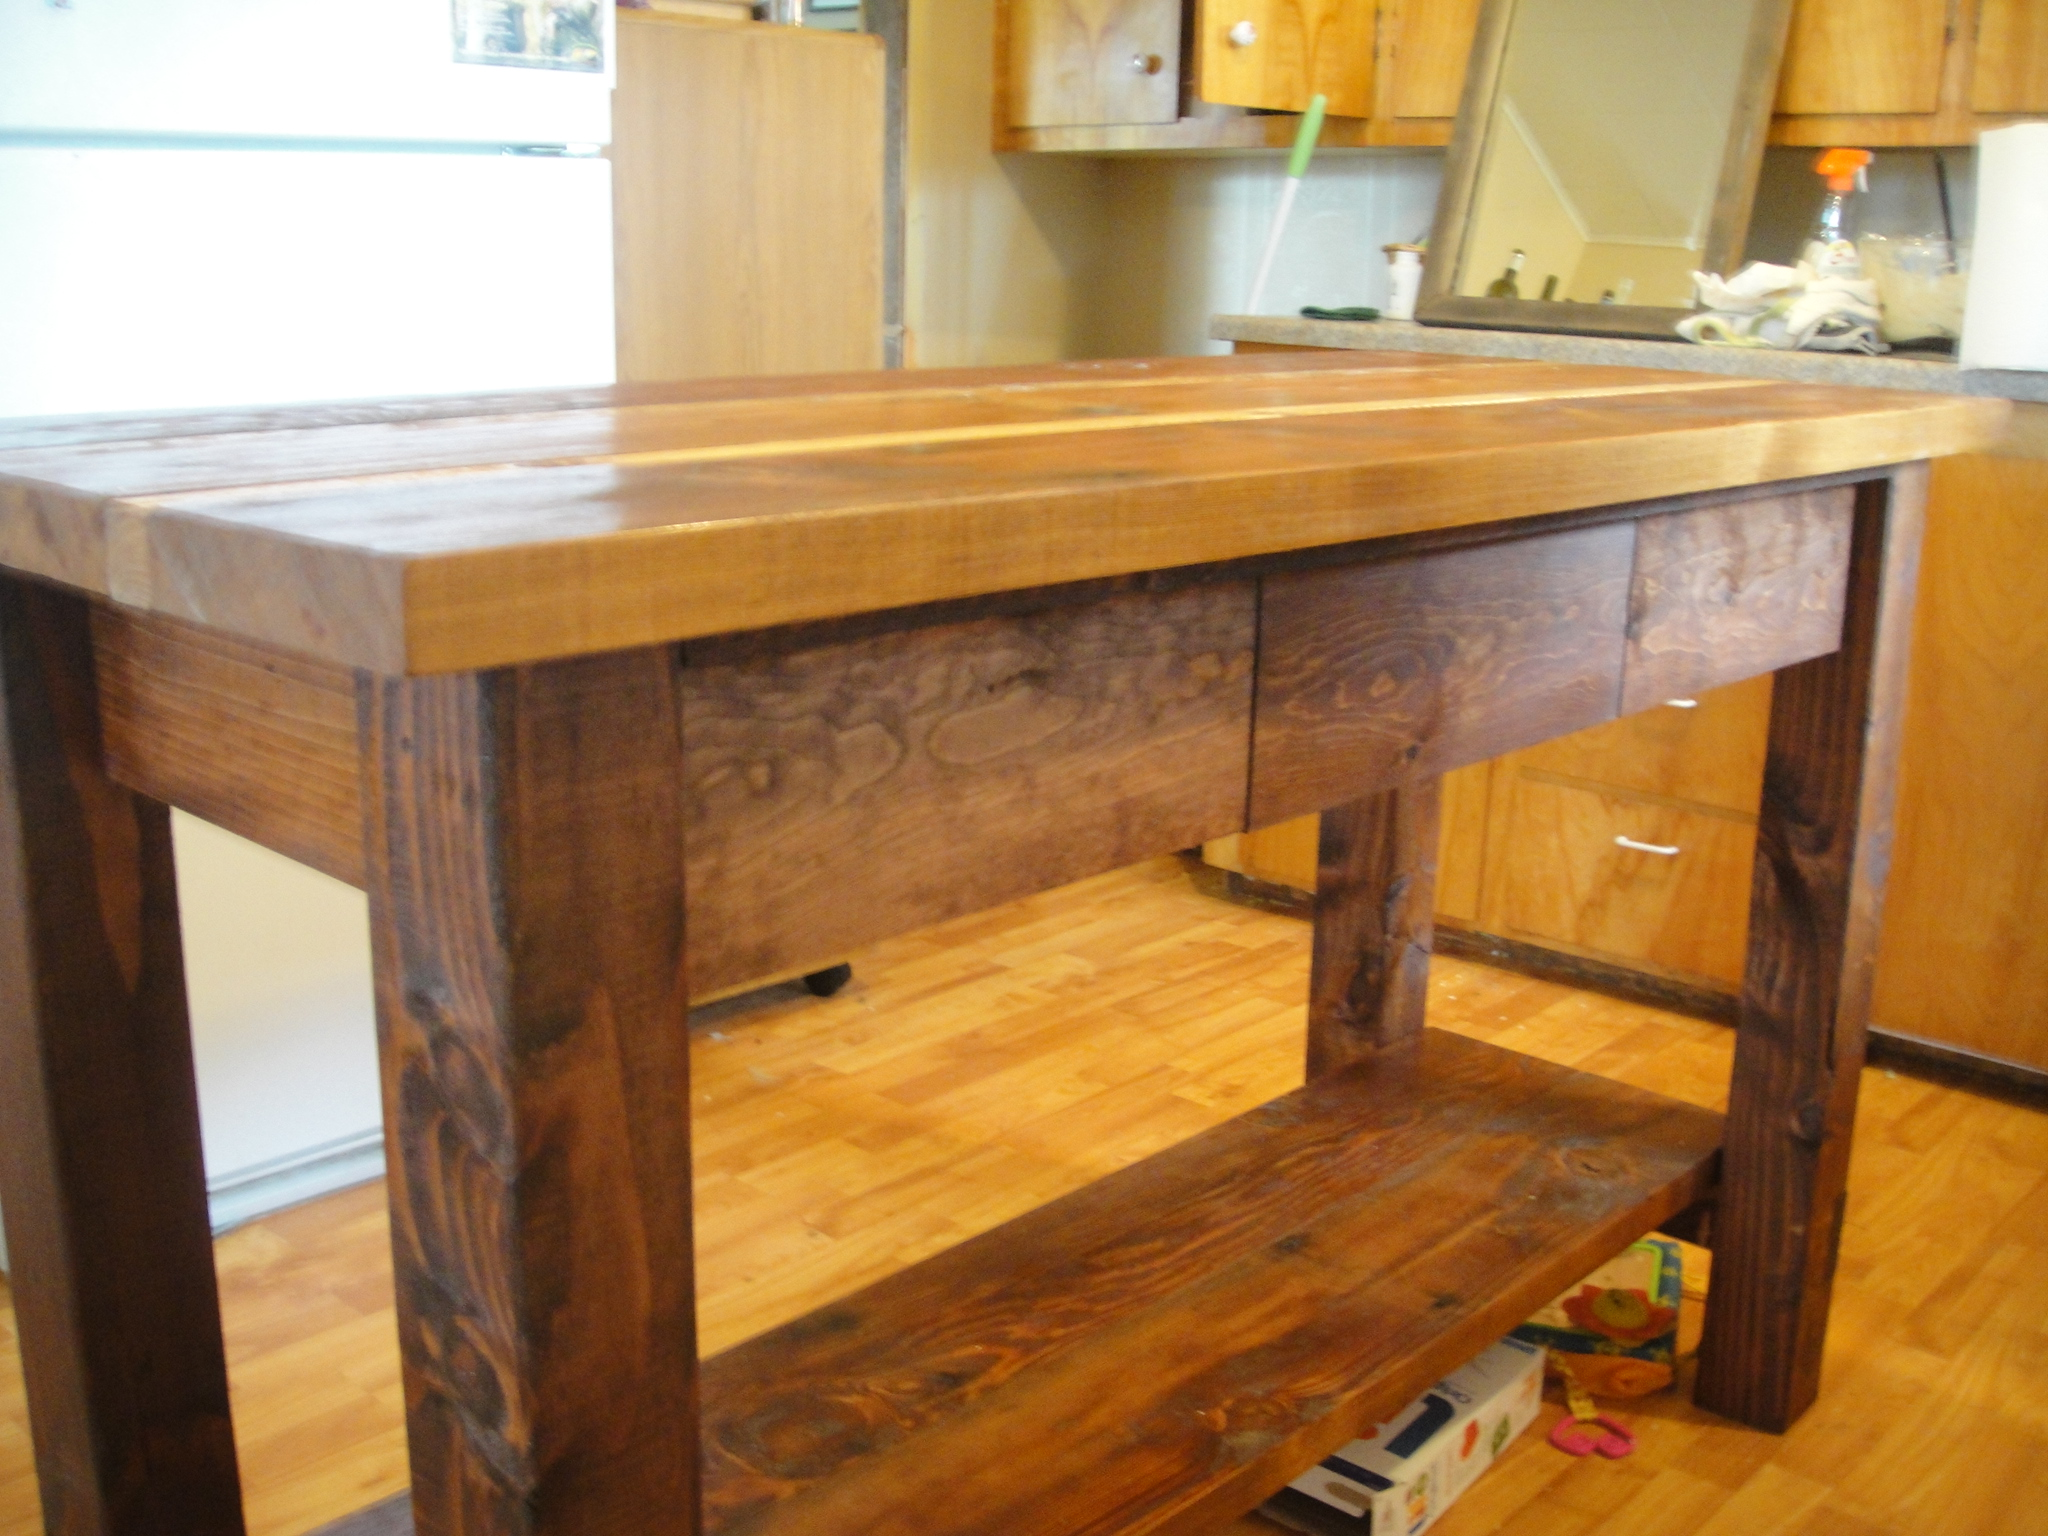 woodworking plans kitchen island ana white kitchen island from reclaimed wood diy projects 1132